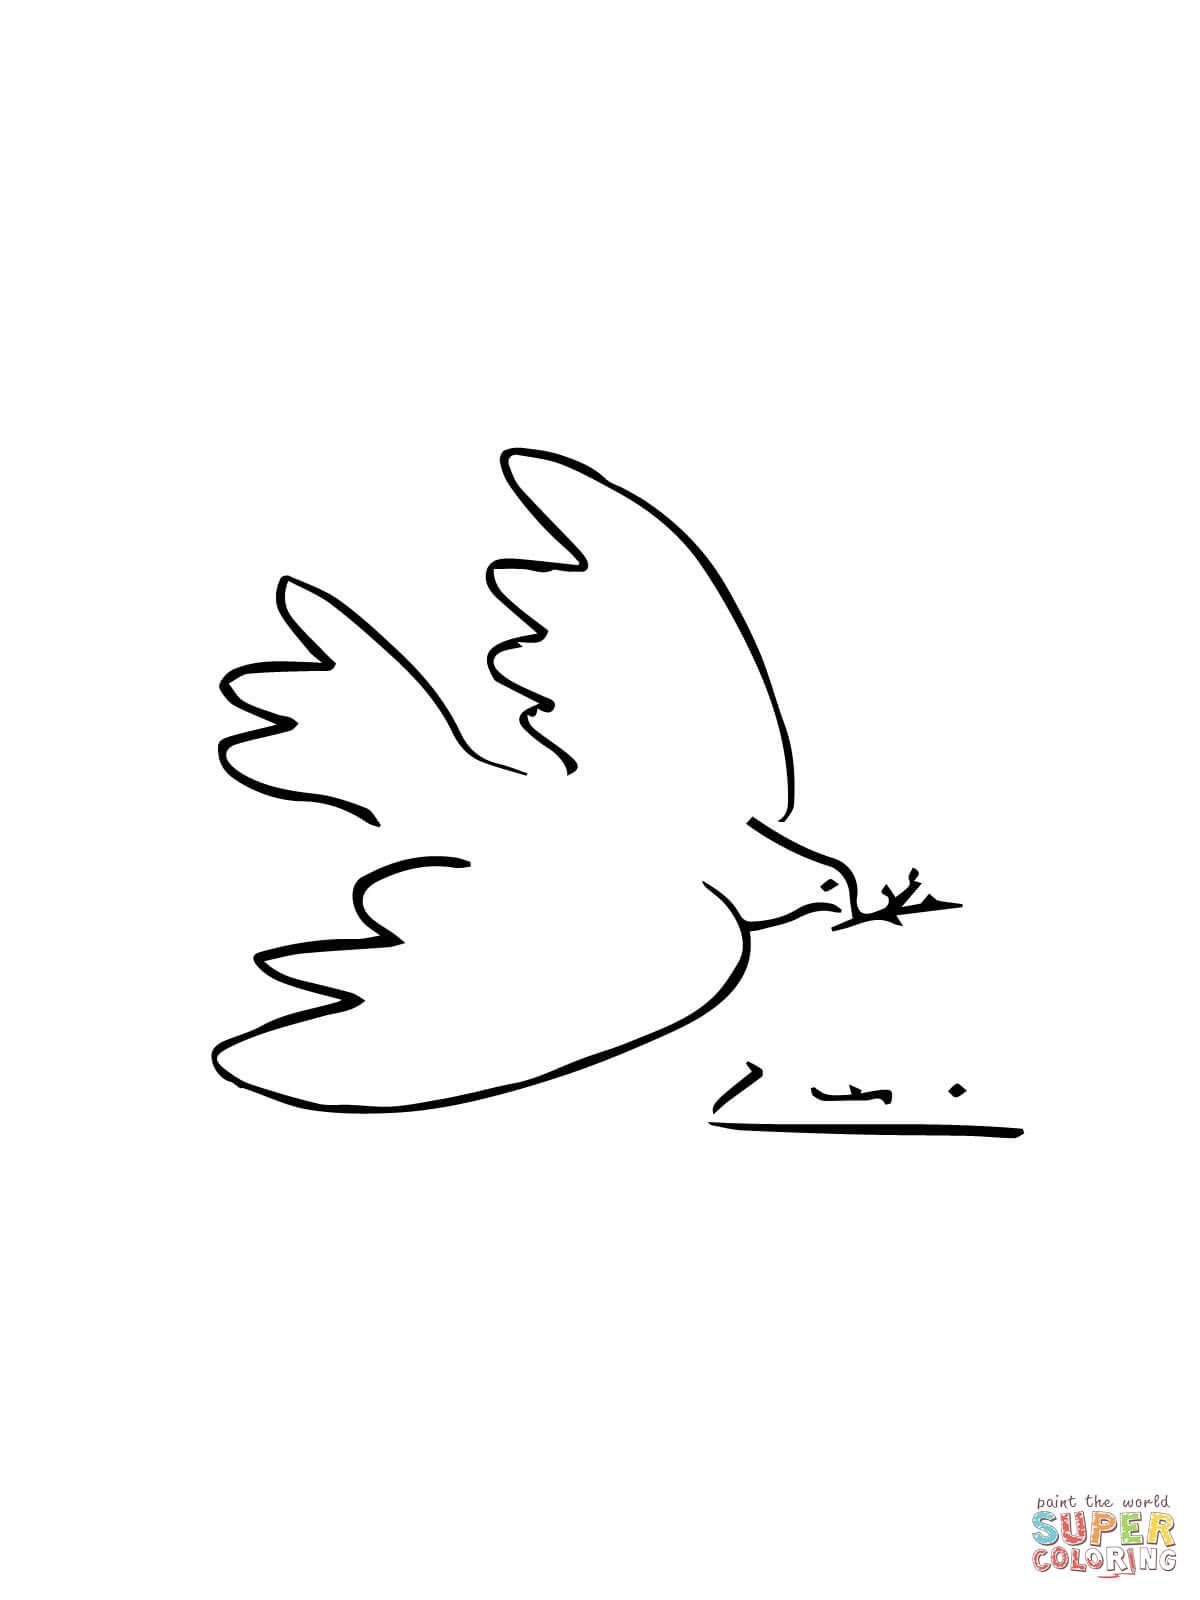 Flying Dove Coloring Page From Doves Category Select 26736 Printable Crafts Of Cartoons Nature Animals Bible And Many More